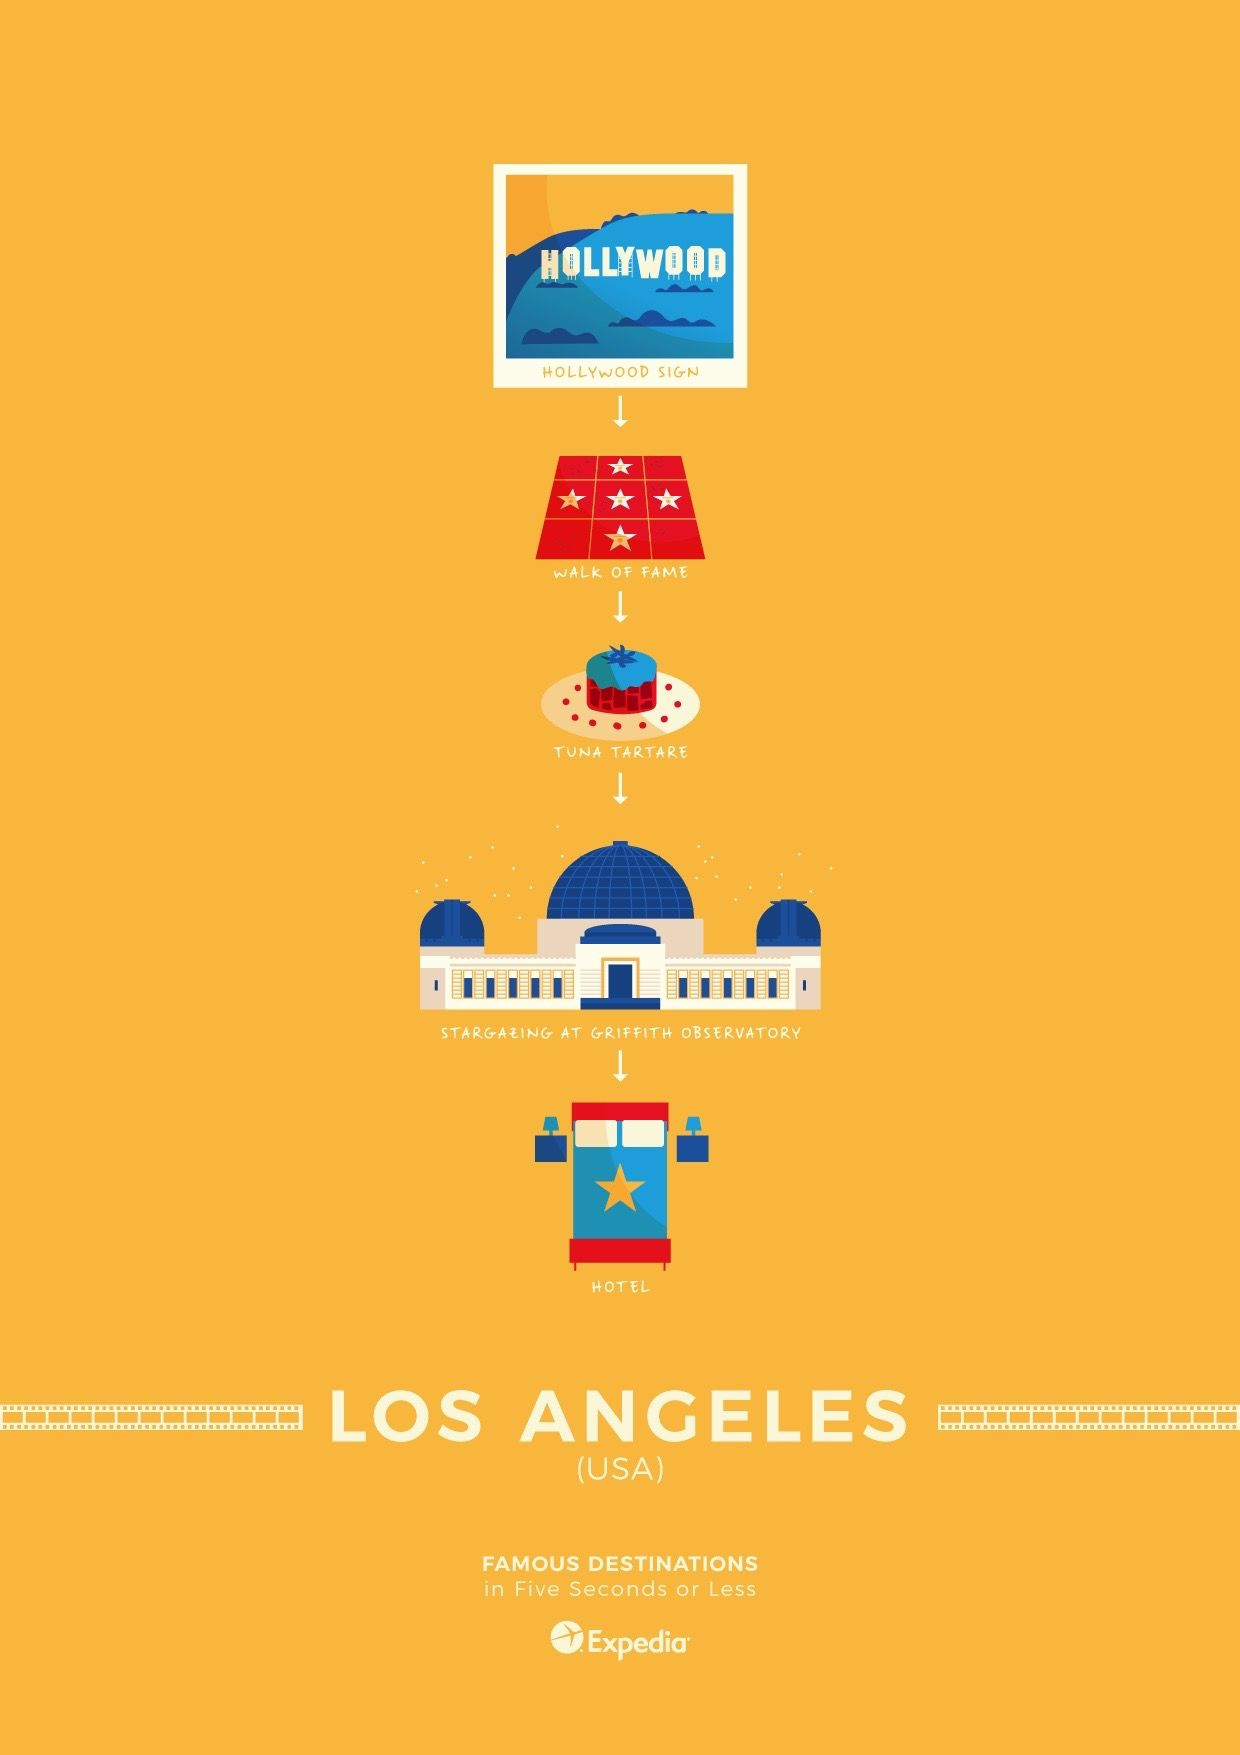 07_Los-Angeles top destinations